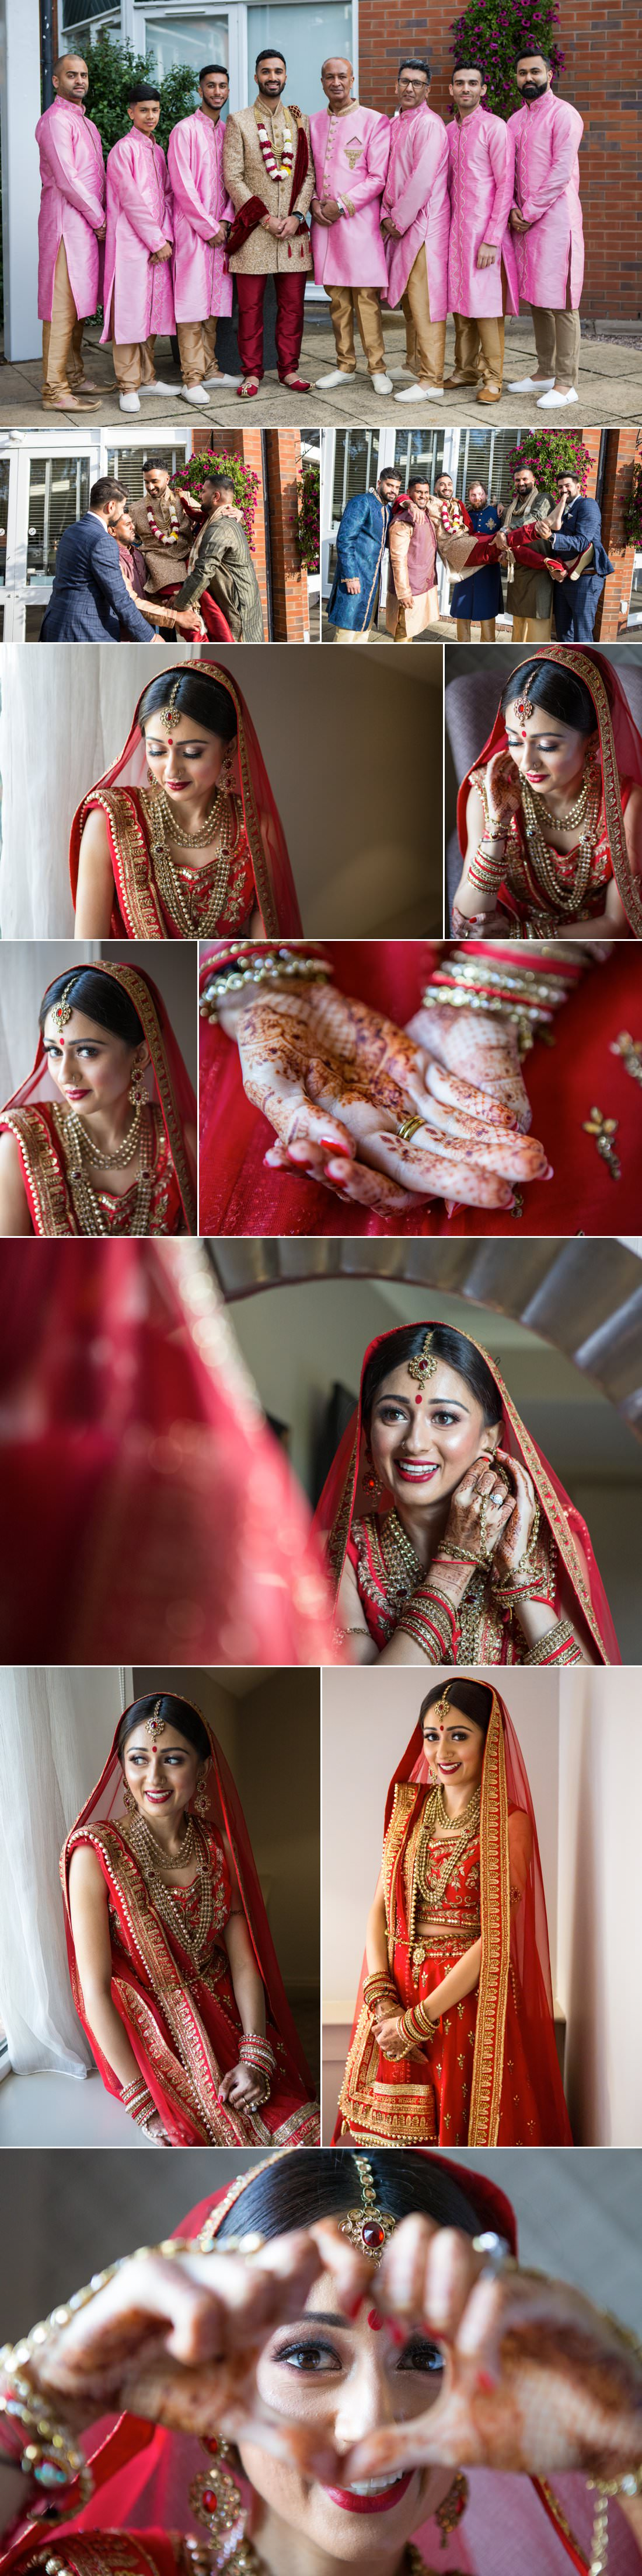 indian wedding photography at the belfry hotel